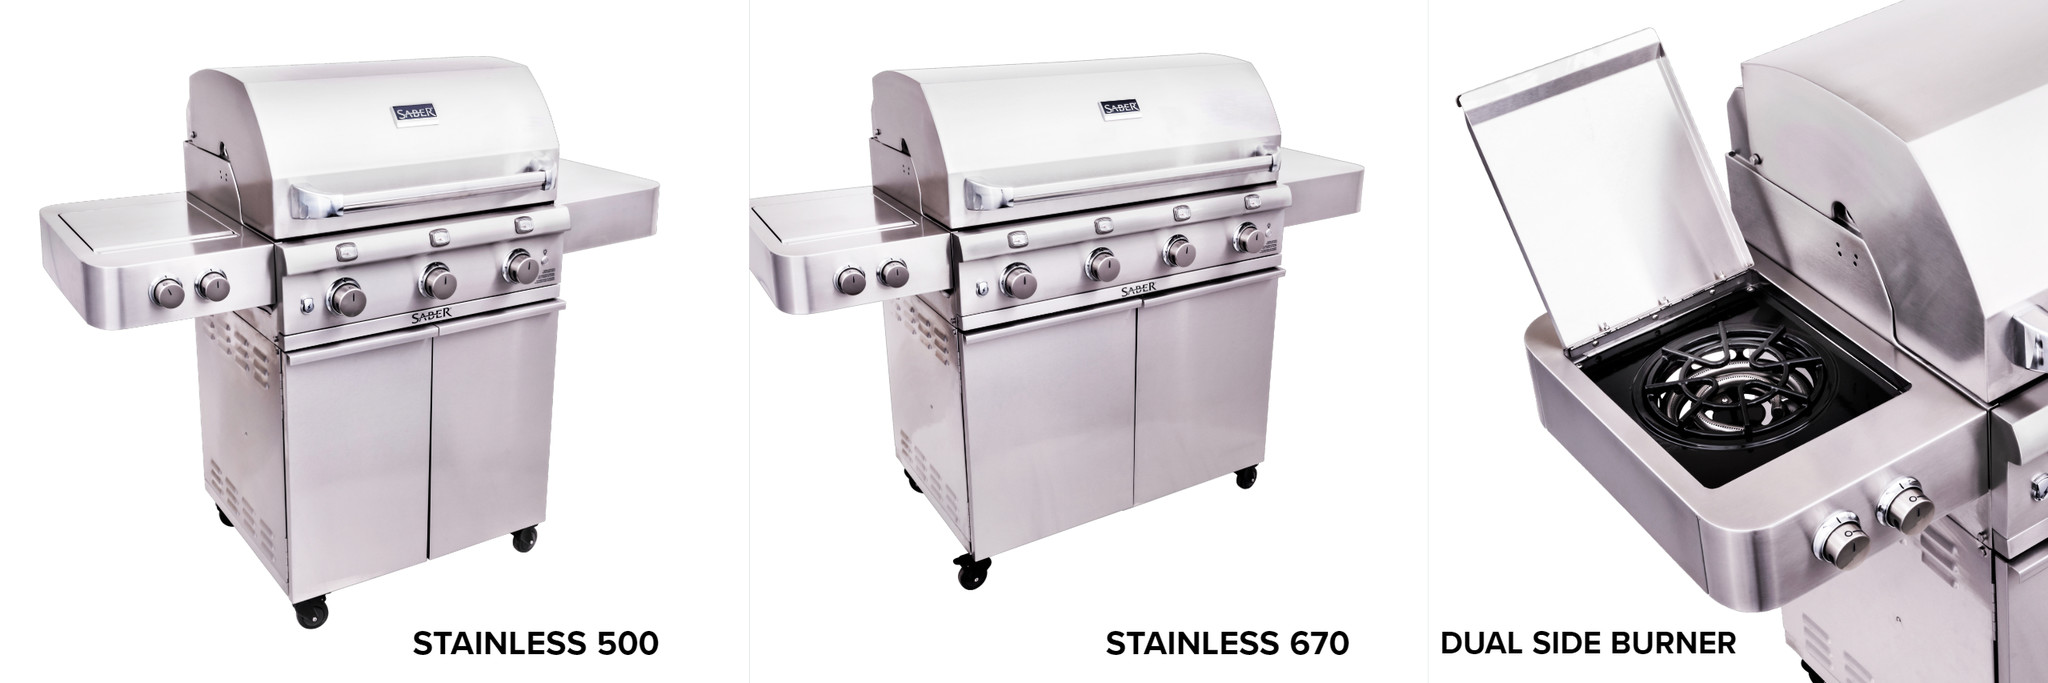 Saber Grills Stainless Cart Series